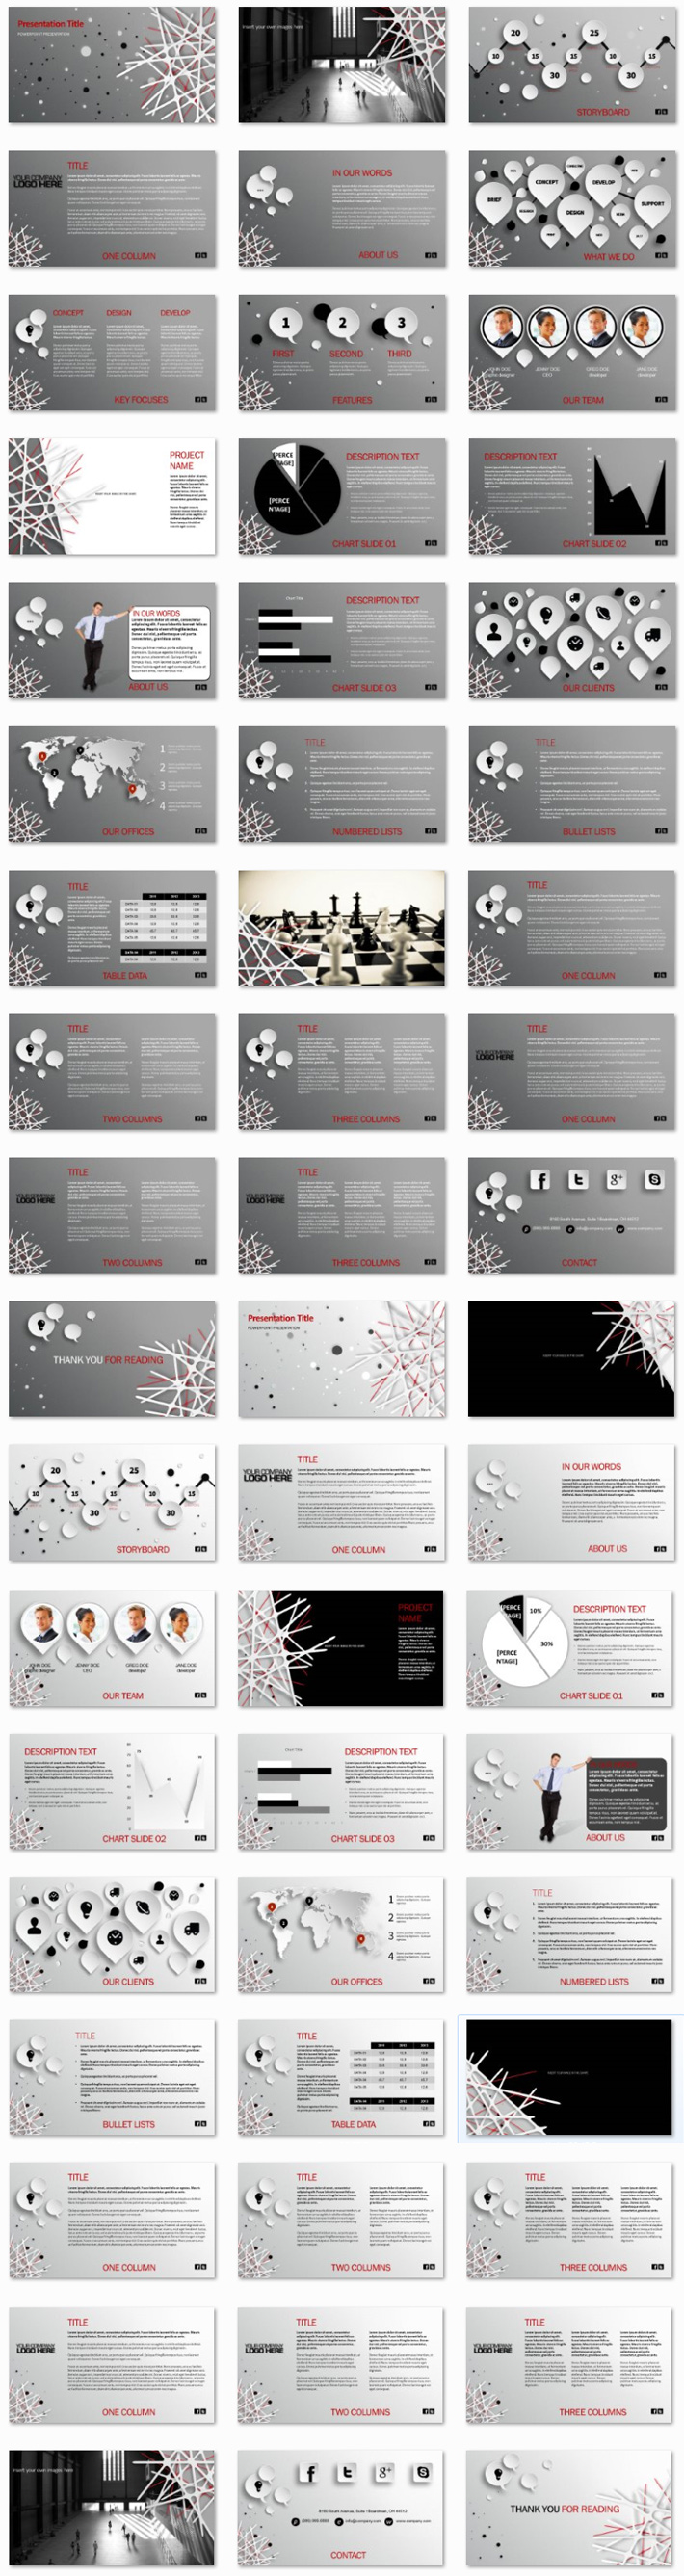 Power Presentation: Abstract Web PPT Premium PowerPoint Presentation Template Slide Set